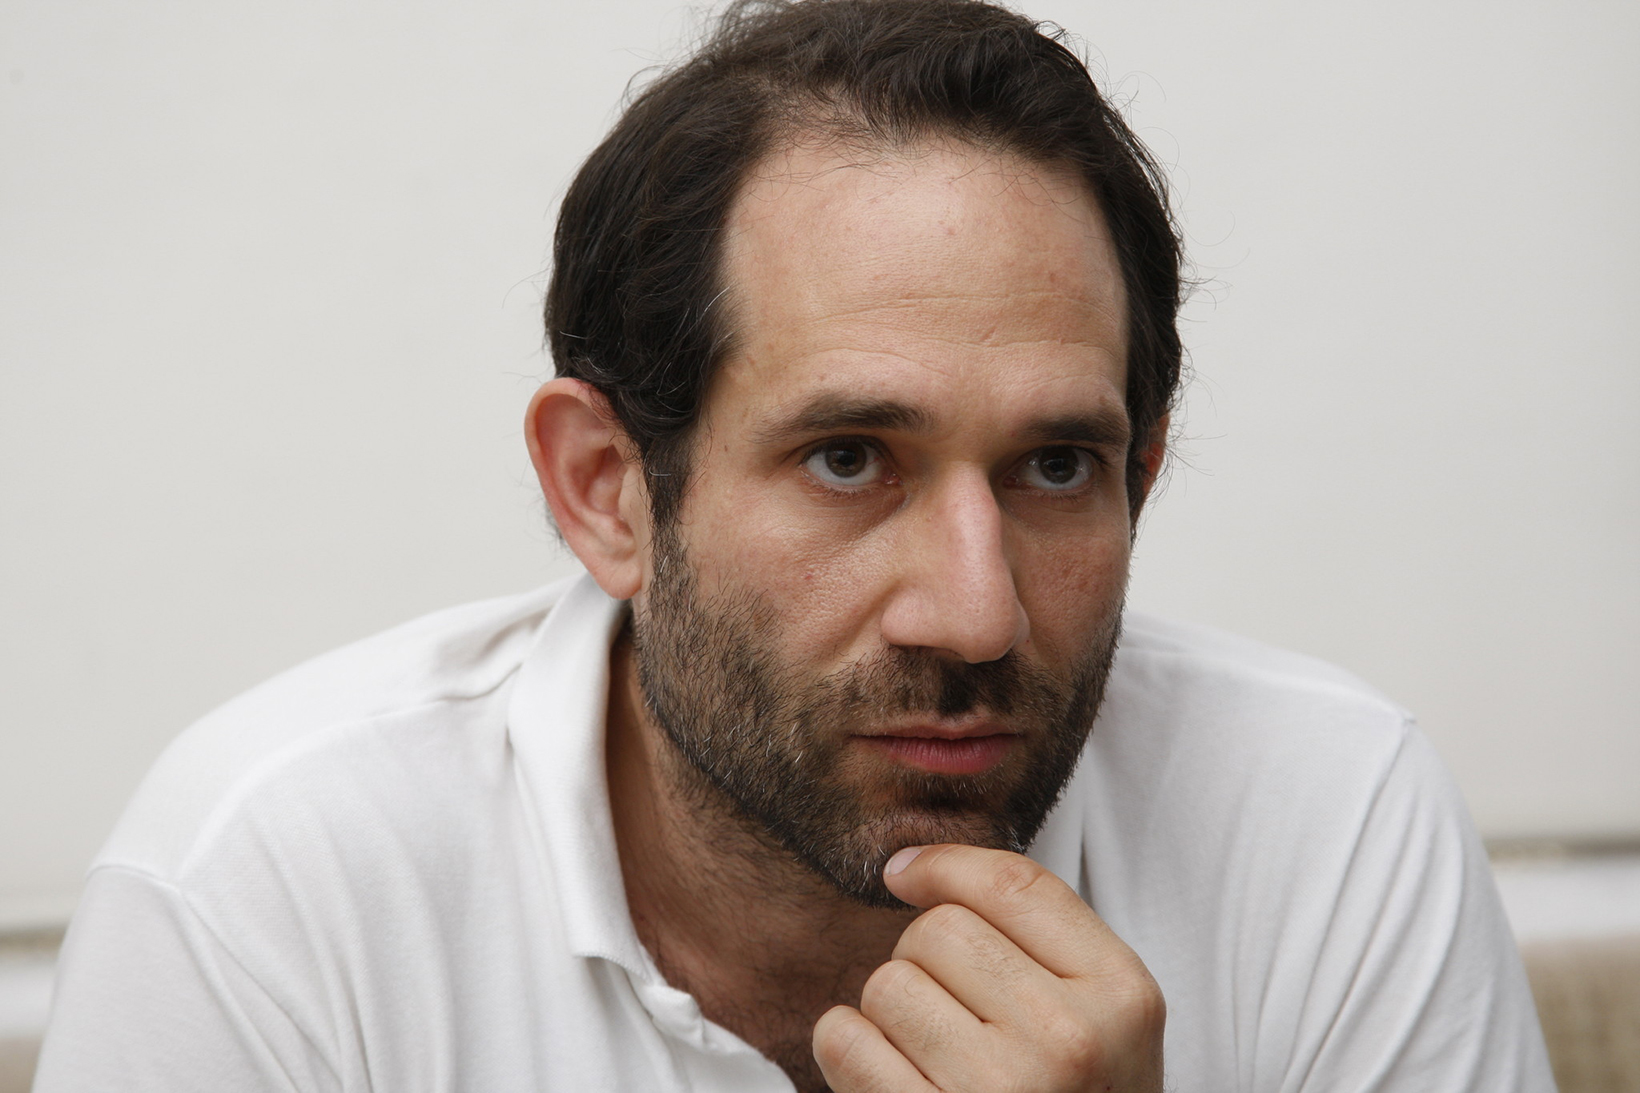 dov charney Charney's line in hipster fashion made him a multi-million dollar sensation until serial accusations of sexual harassment led to his downfall has the man who now sleeps on a mattress in his new factory changed his ways.